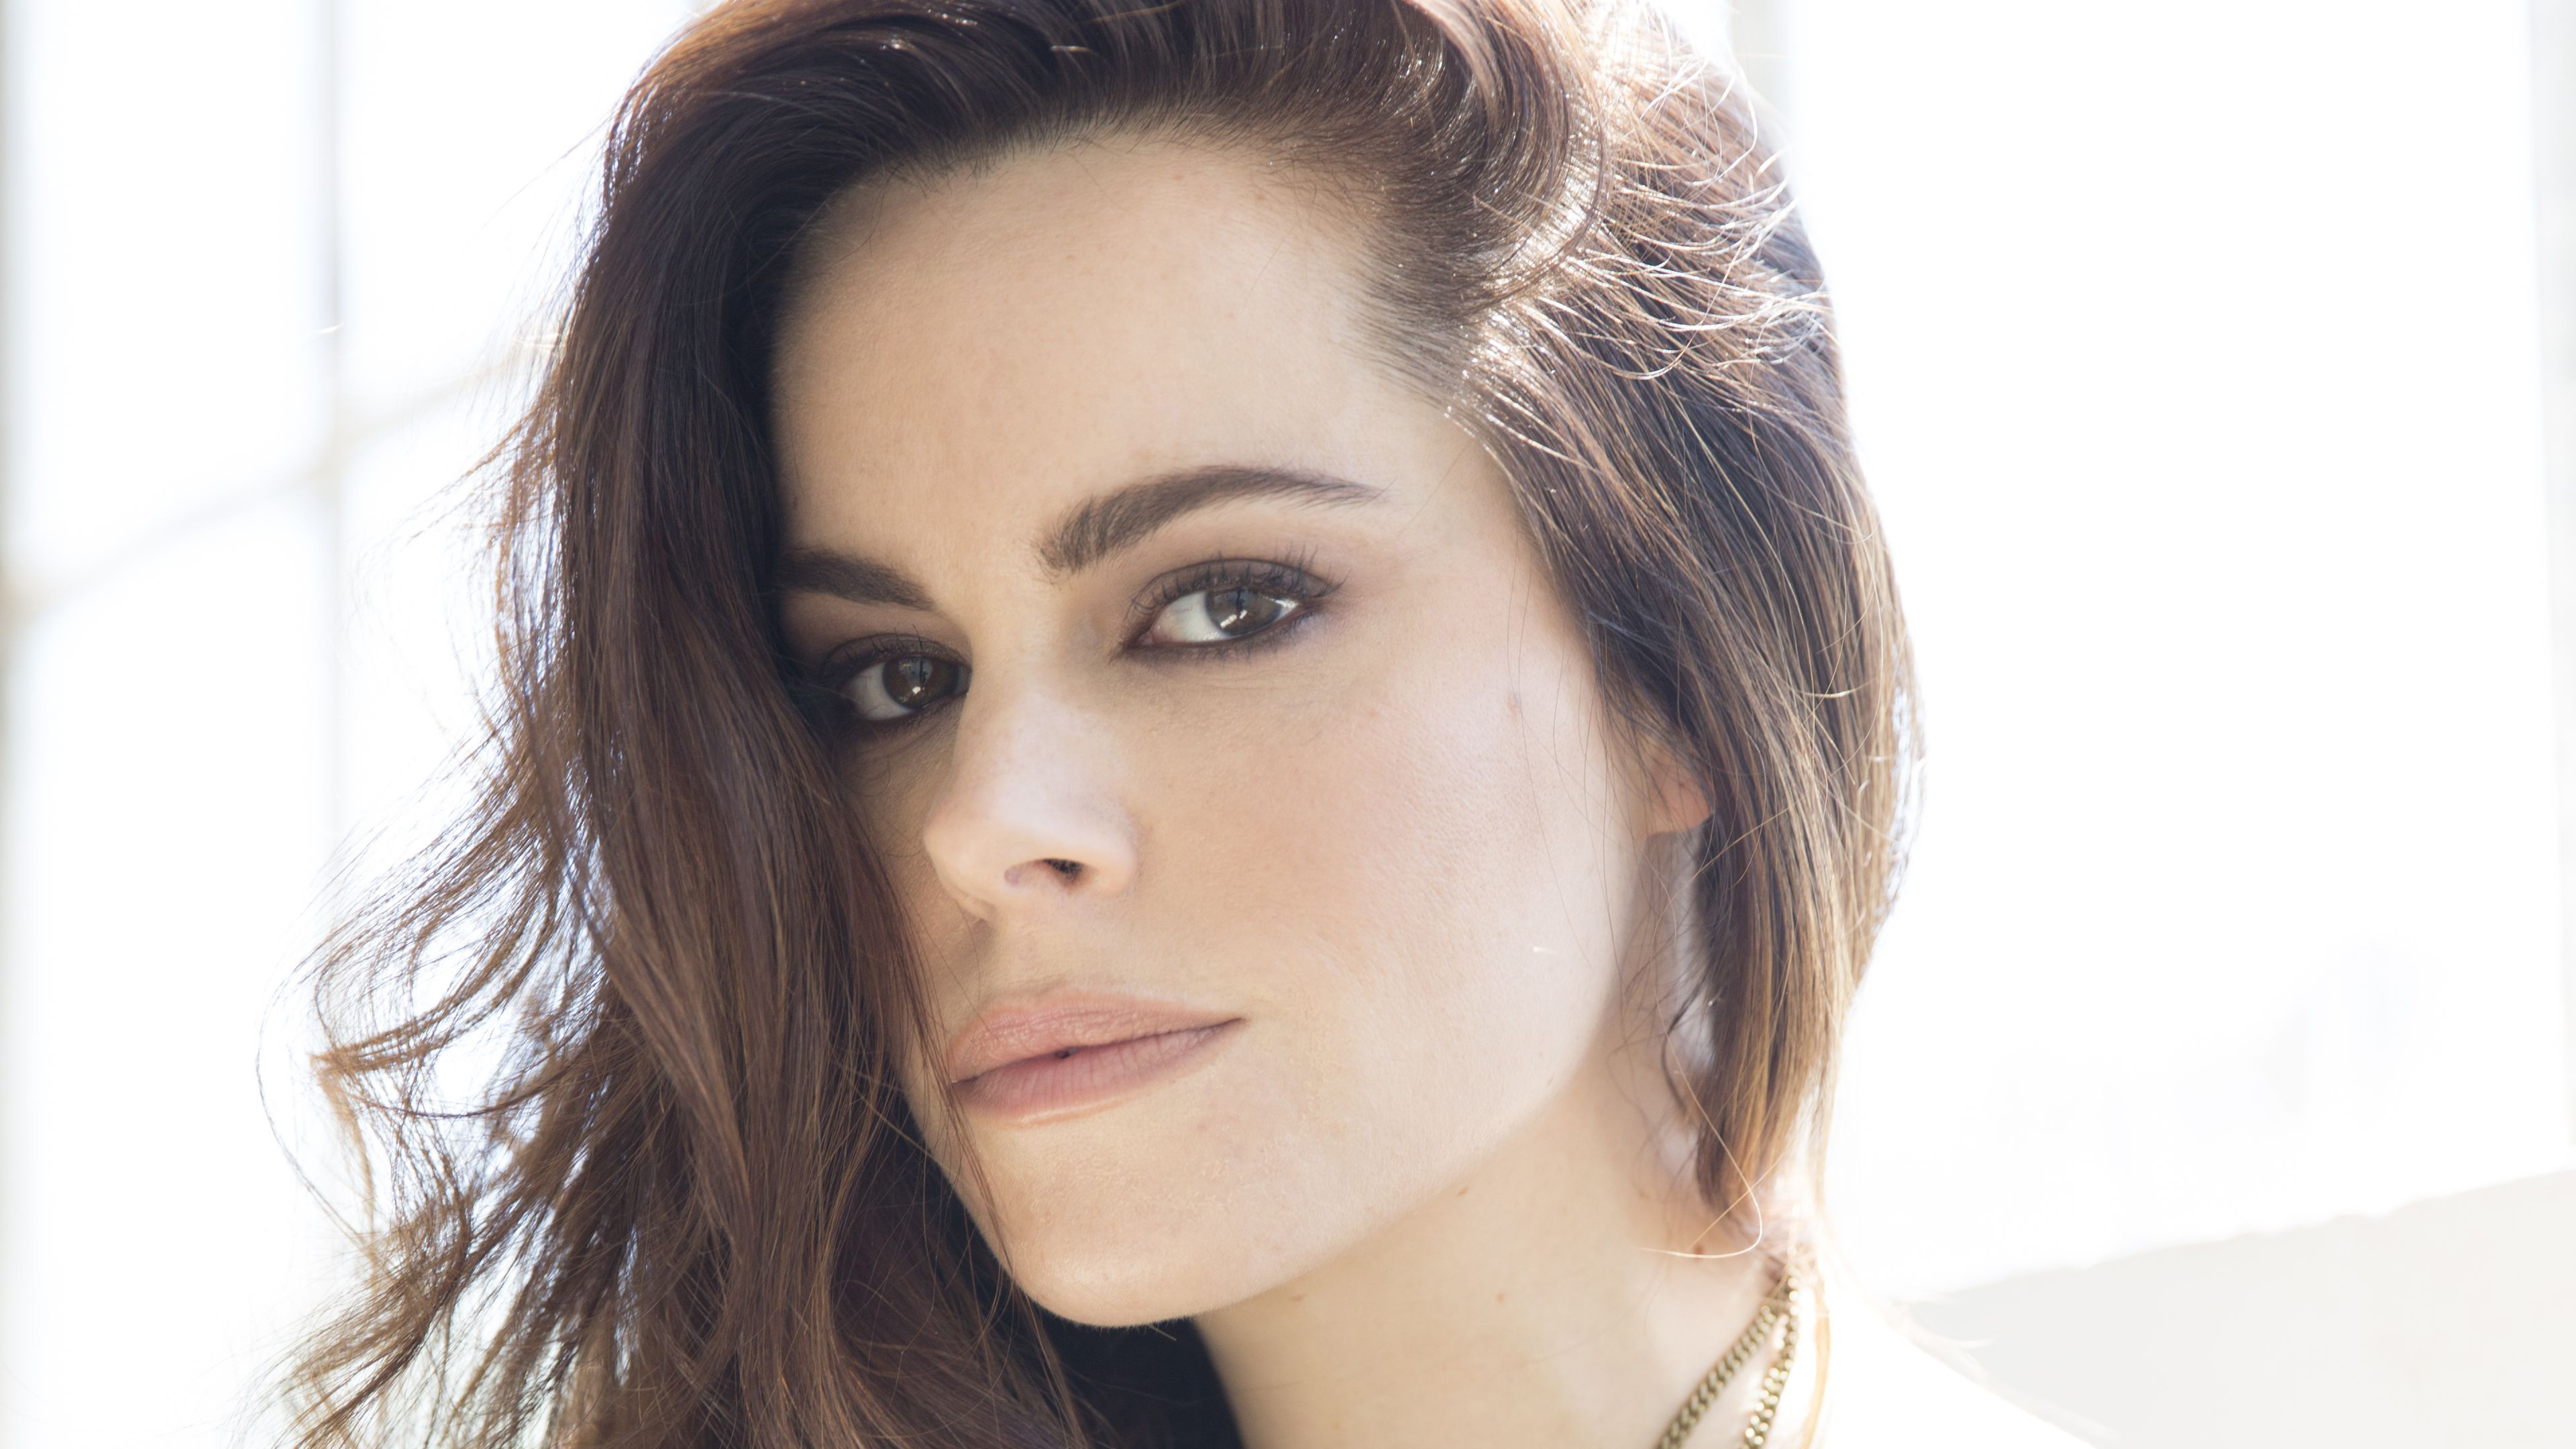 emily hampshire 1536944568 - Emily Hampshire - hd-wallpapers, girls wallpapers, emily hampshire wallpapers, celebrities wallpapers, 4k-wallpapers